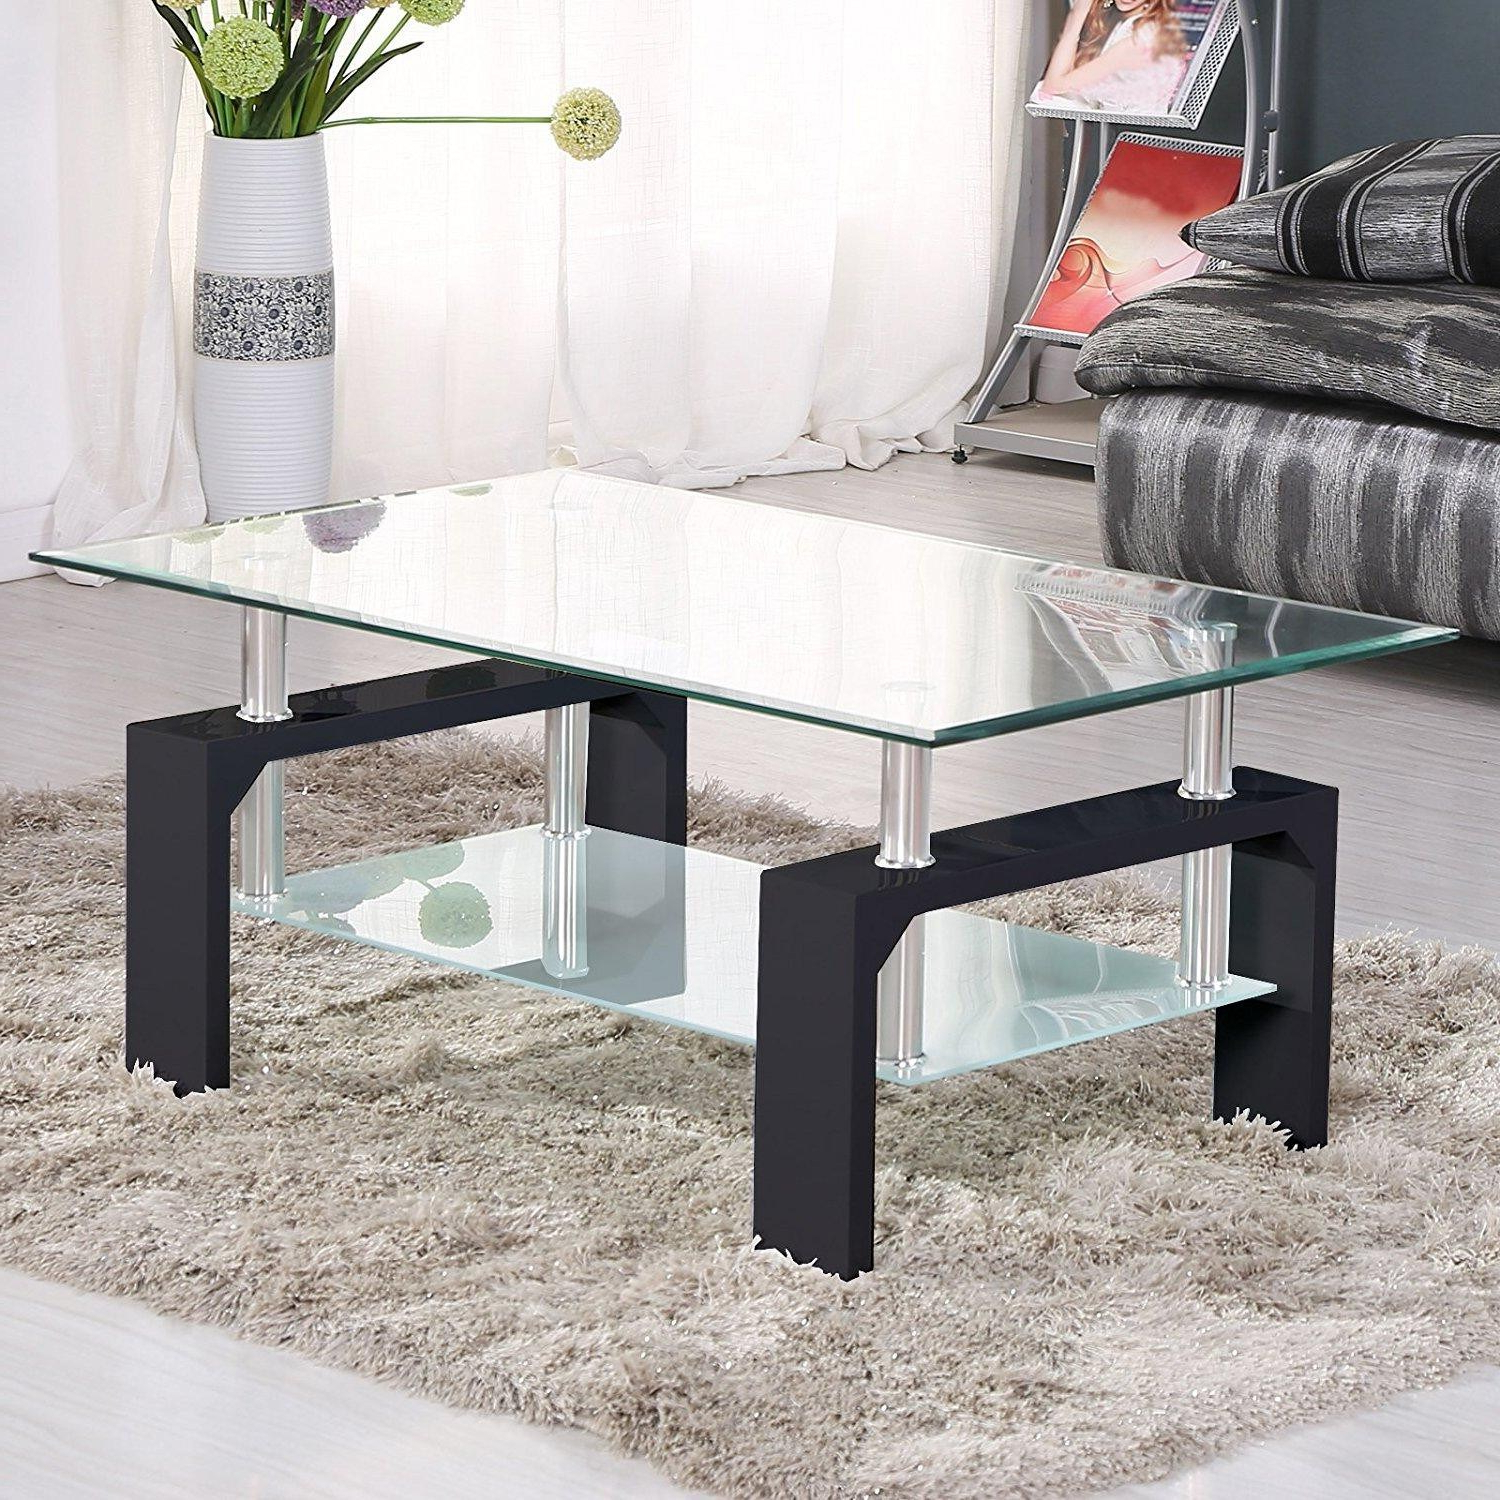 Potomac Adjustable Coffee Tables Regarding 2019 Antique Storage Potomac Adjustable Coffee Table Has Been (View 5 of 20)